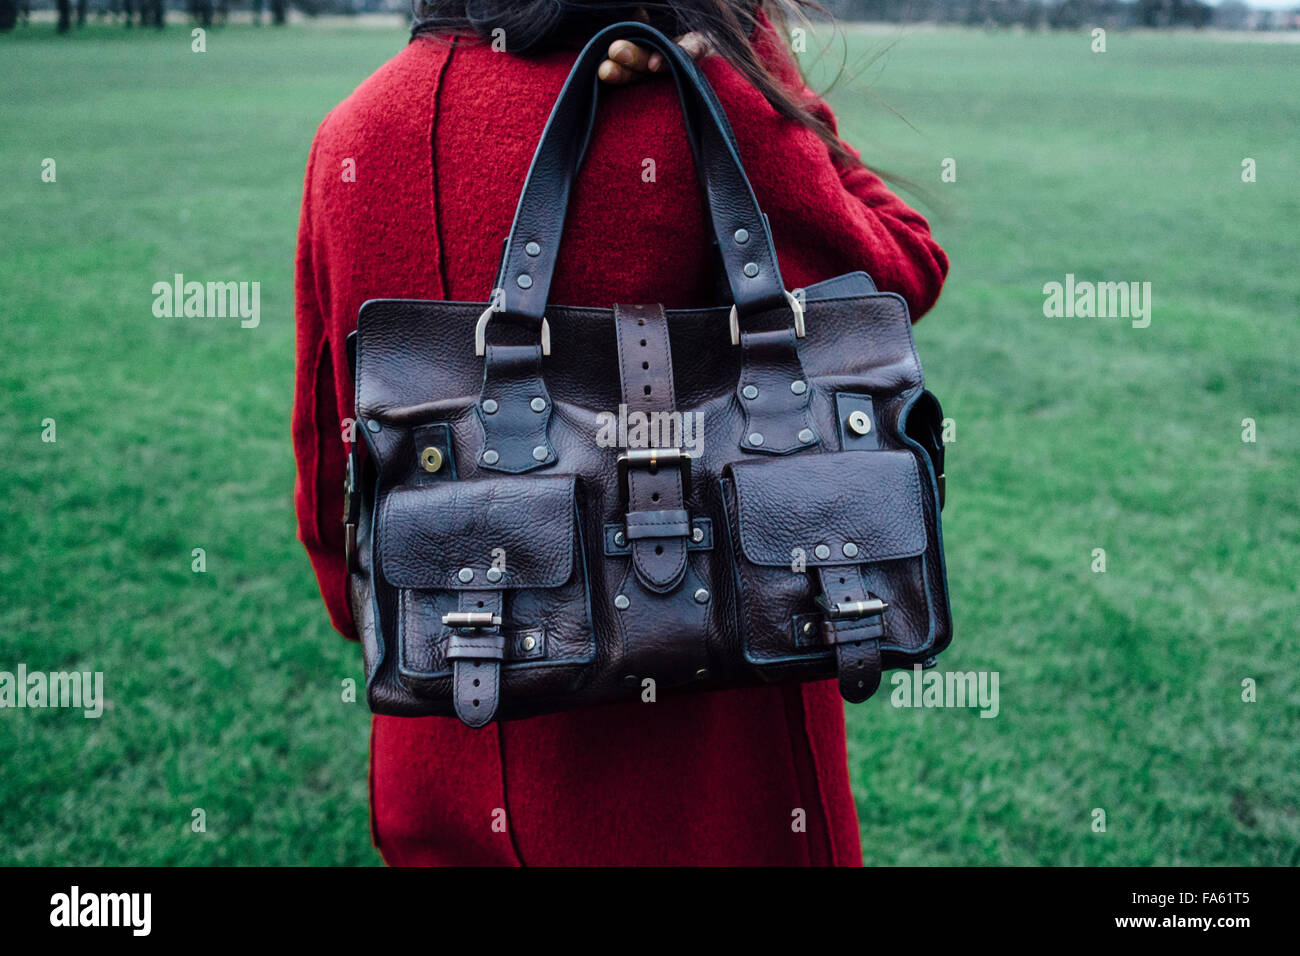 551f06926cc2 Mulberry handbag in black patent shiny soft leather. BWMMDH (RM). Woman  holding Mulberry Roxanne leather handbag over the shoulder - Stock Image